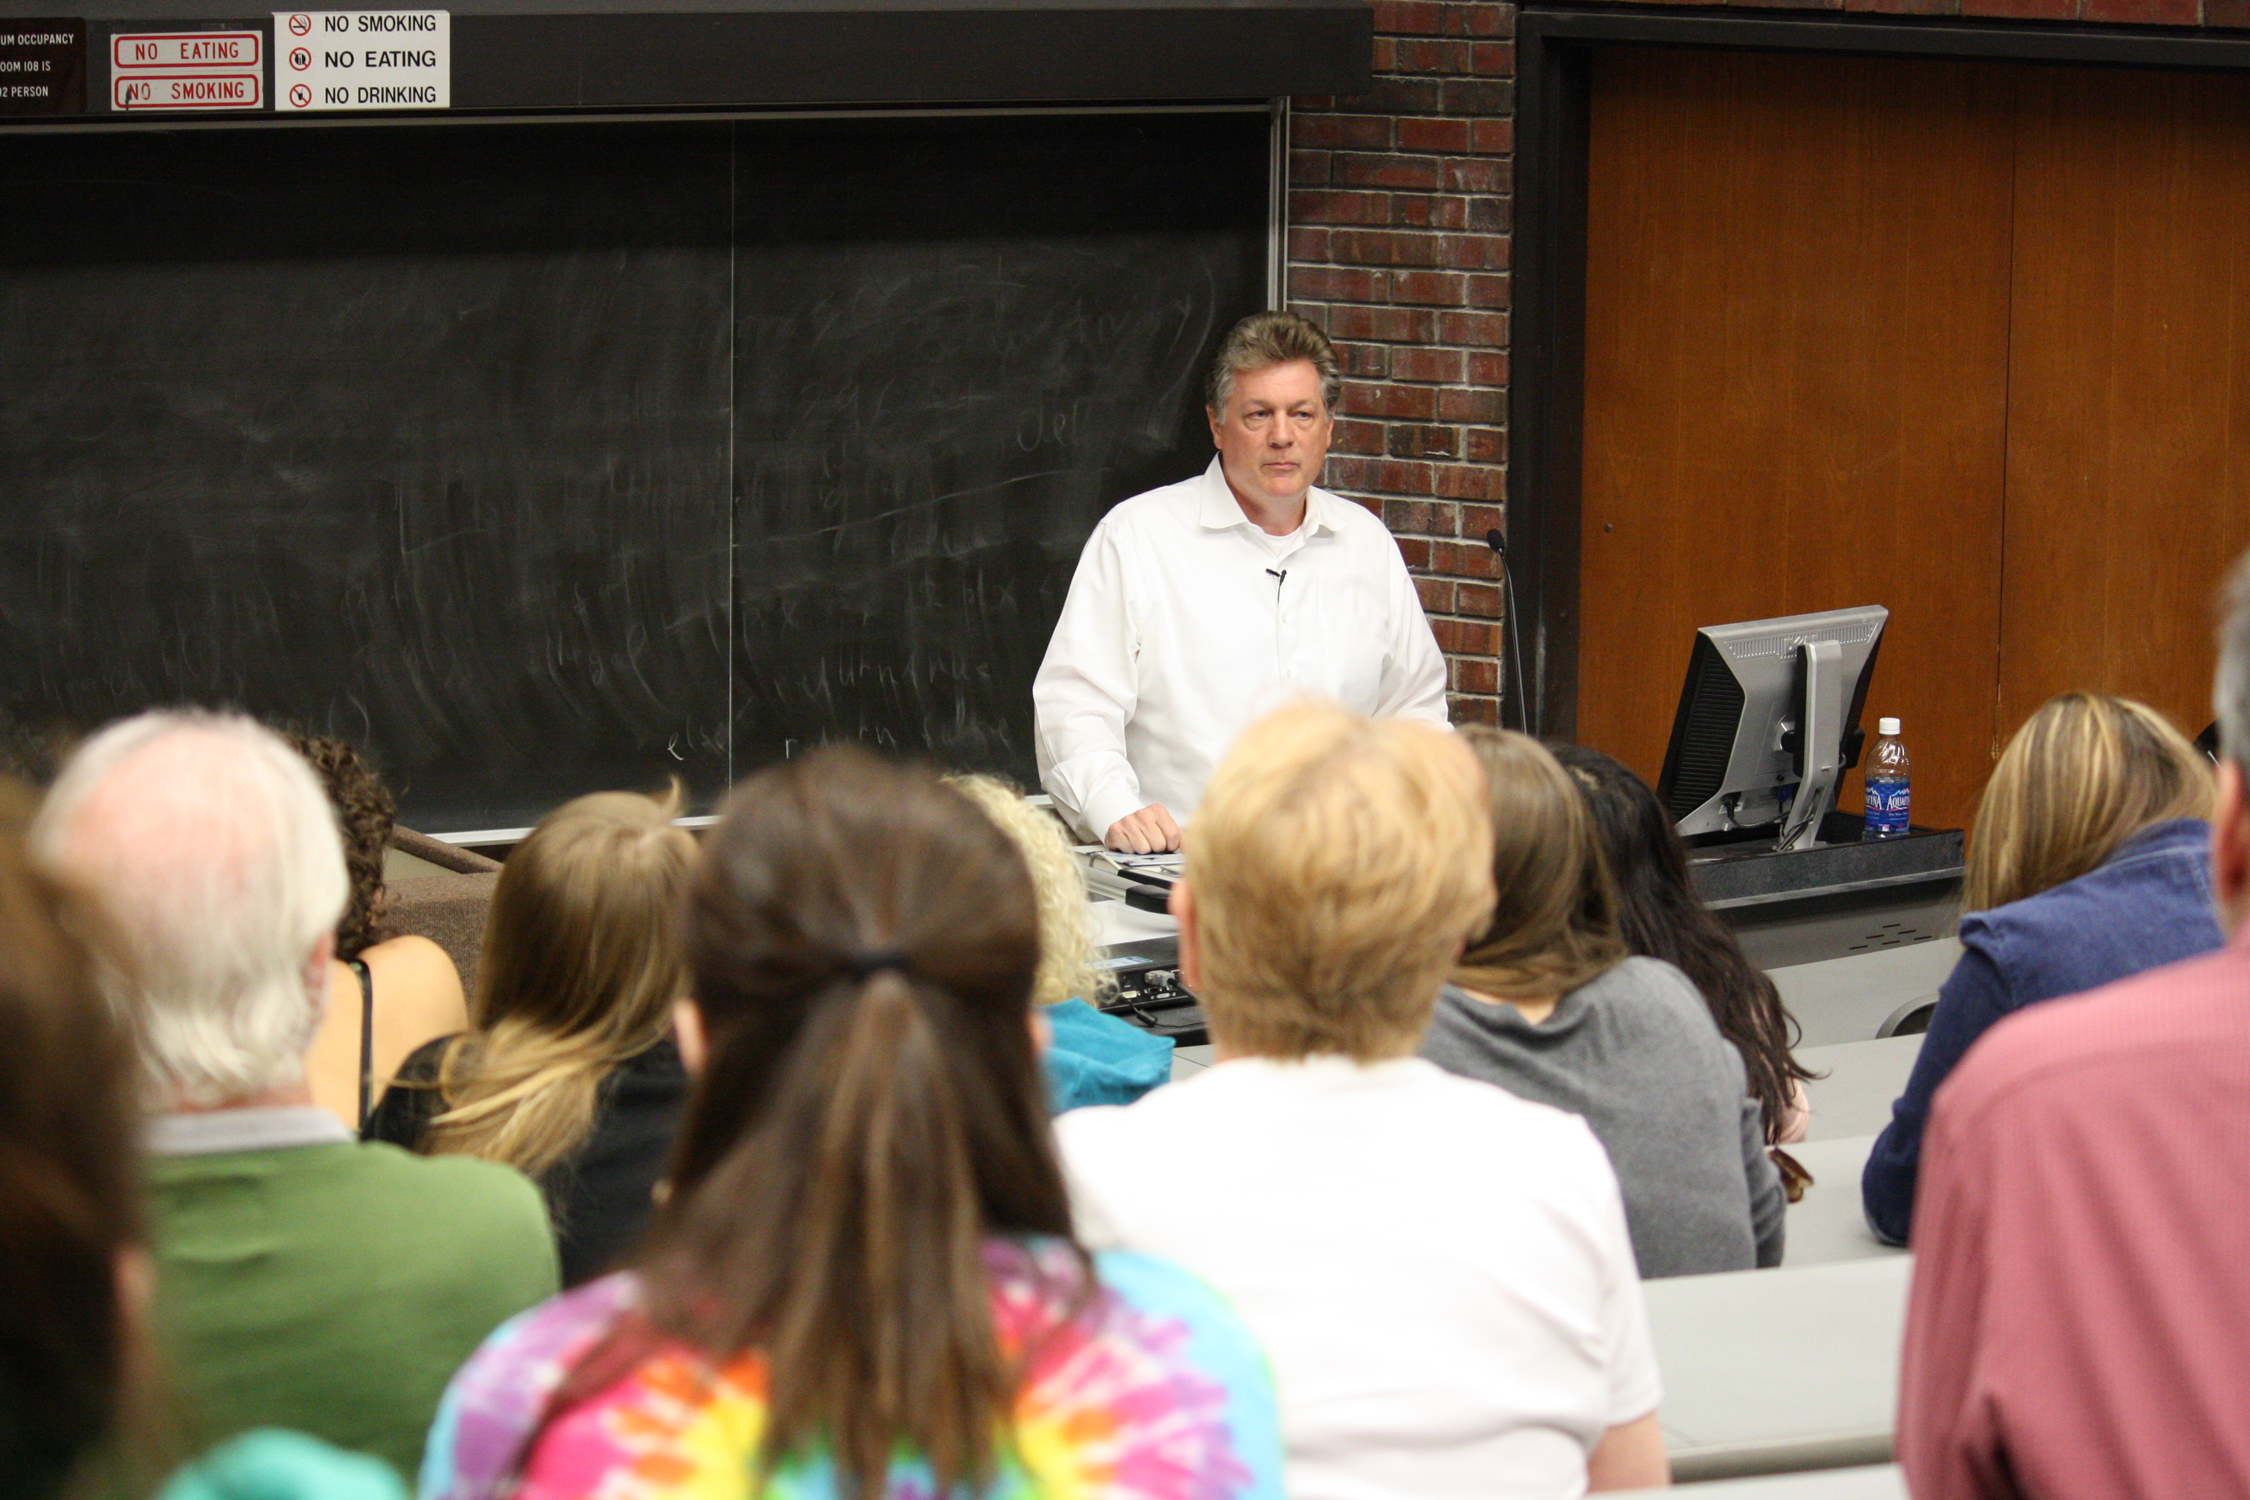 Ottaway Professor John Larson as he speaks to the crowd about his experiences as a Journalist and learning people's stories first hand.  Photo by Jade Schwartz